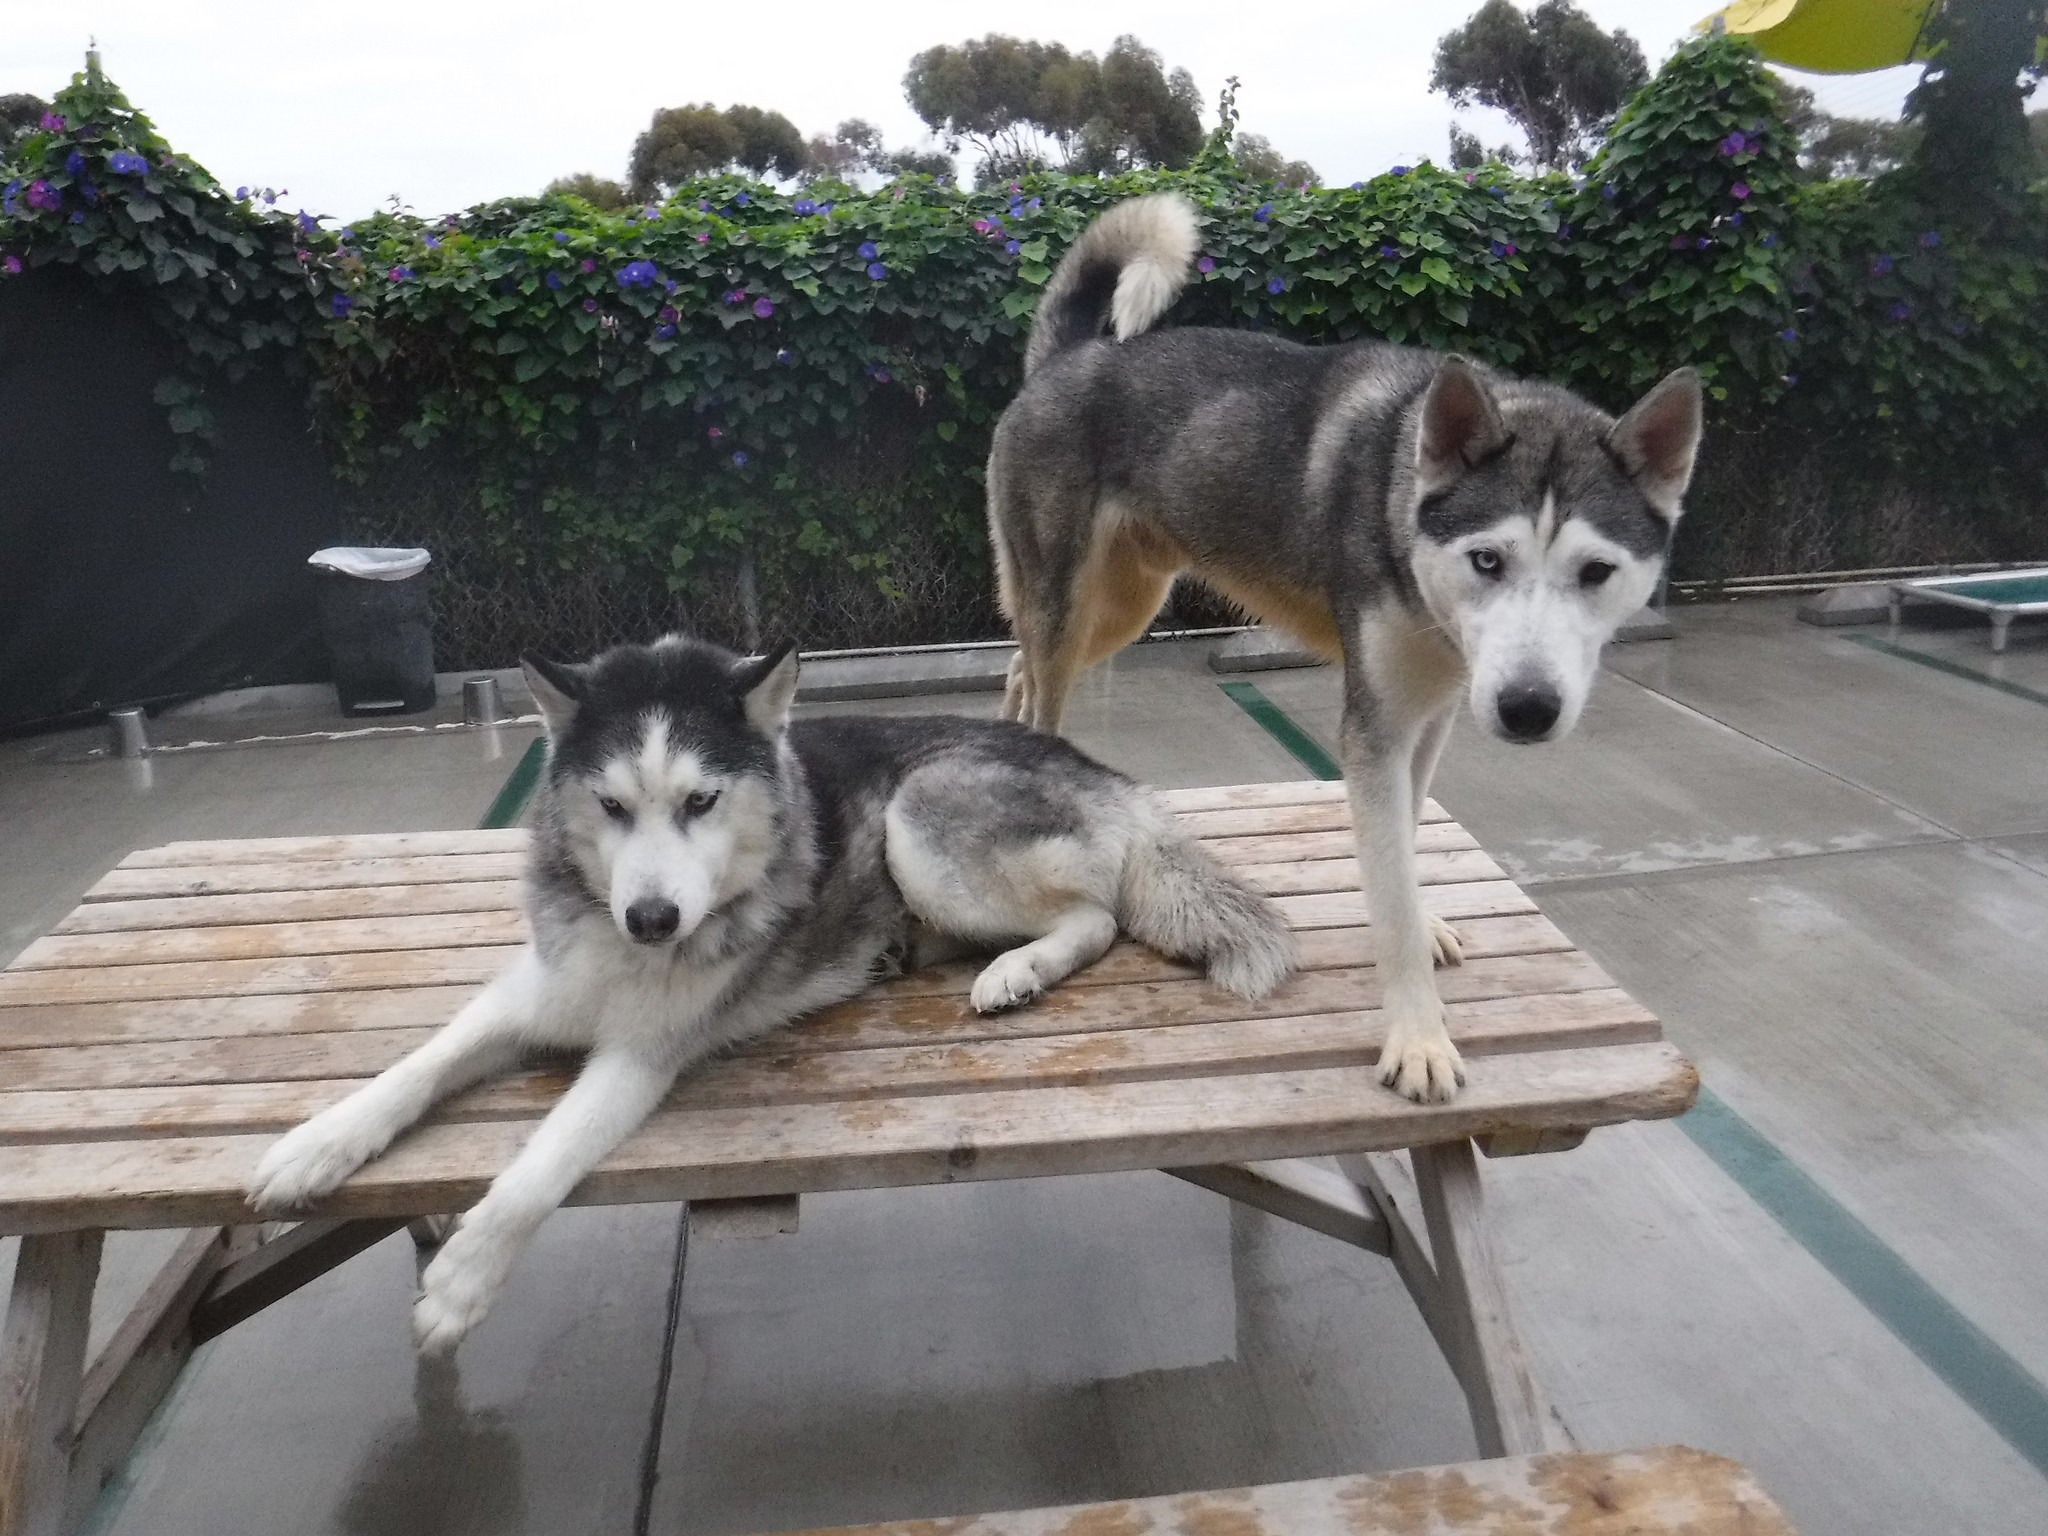 Husky puppies for sale yucca valley - Husky Puppies For Sale Yucca Valley 10